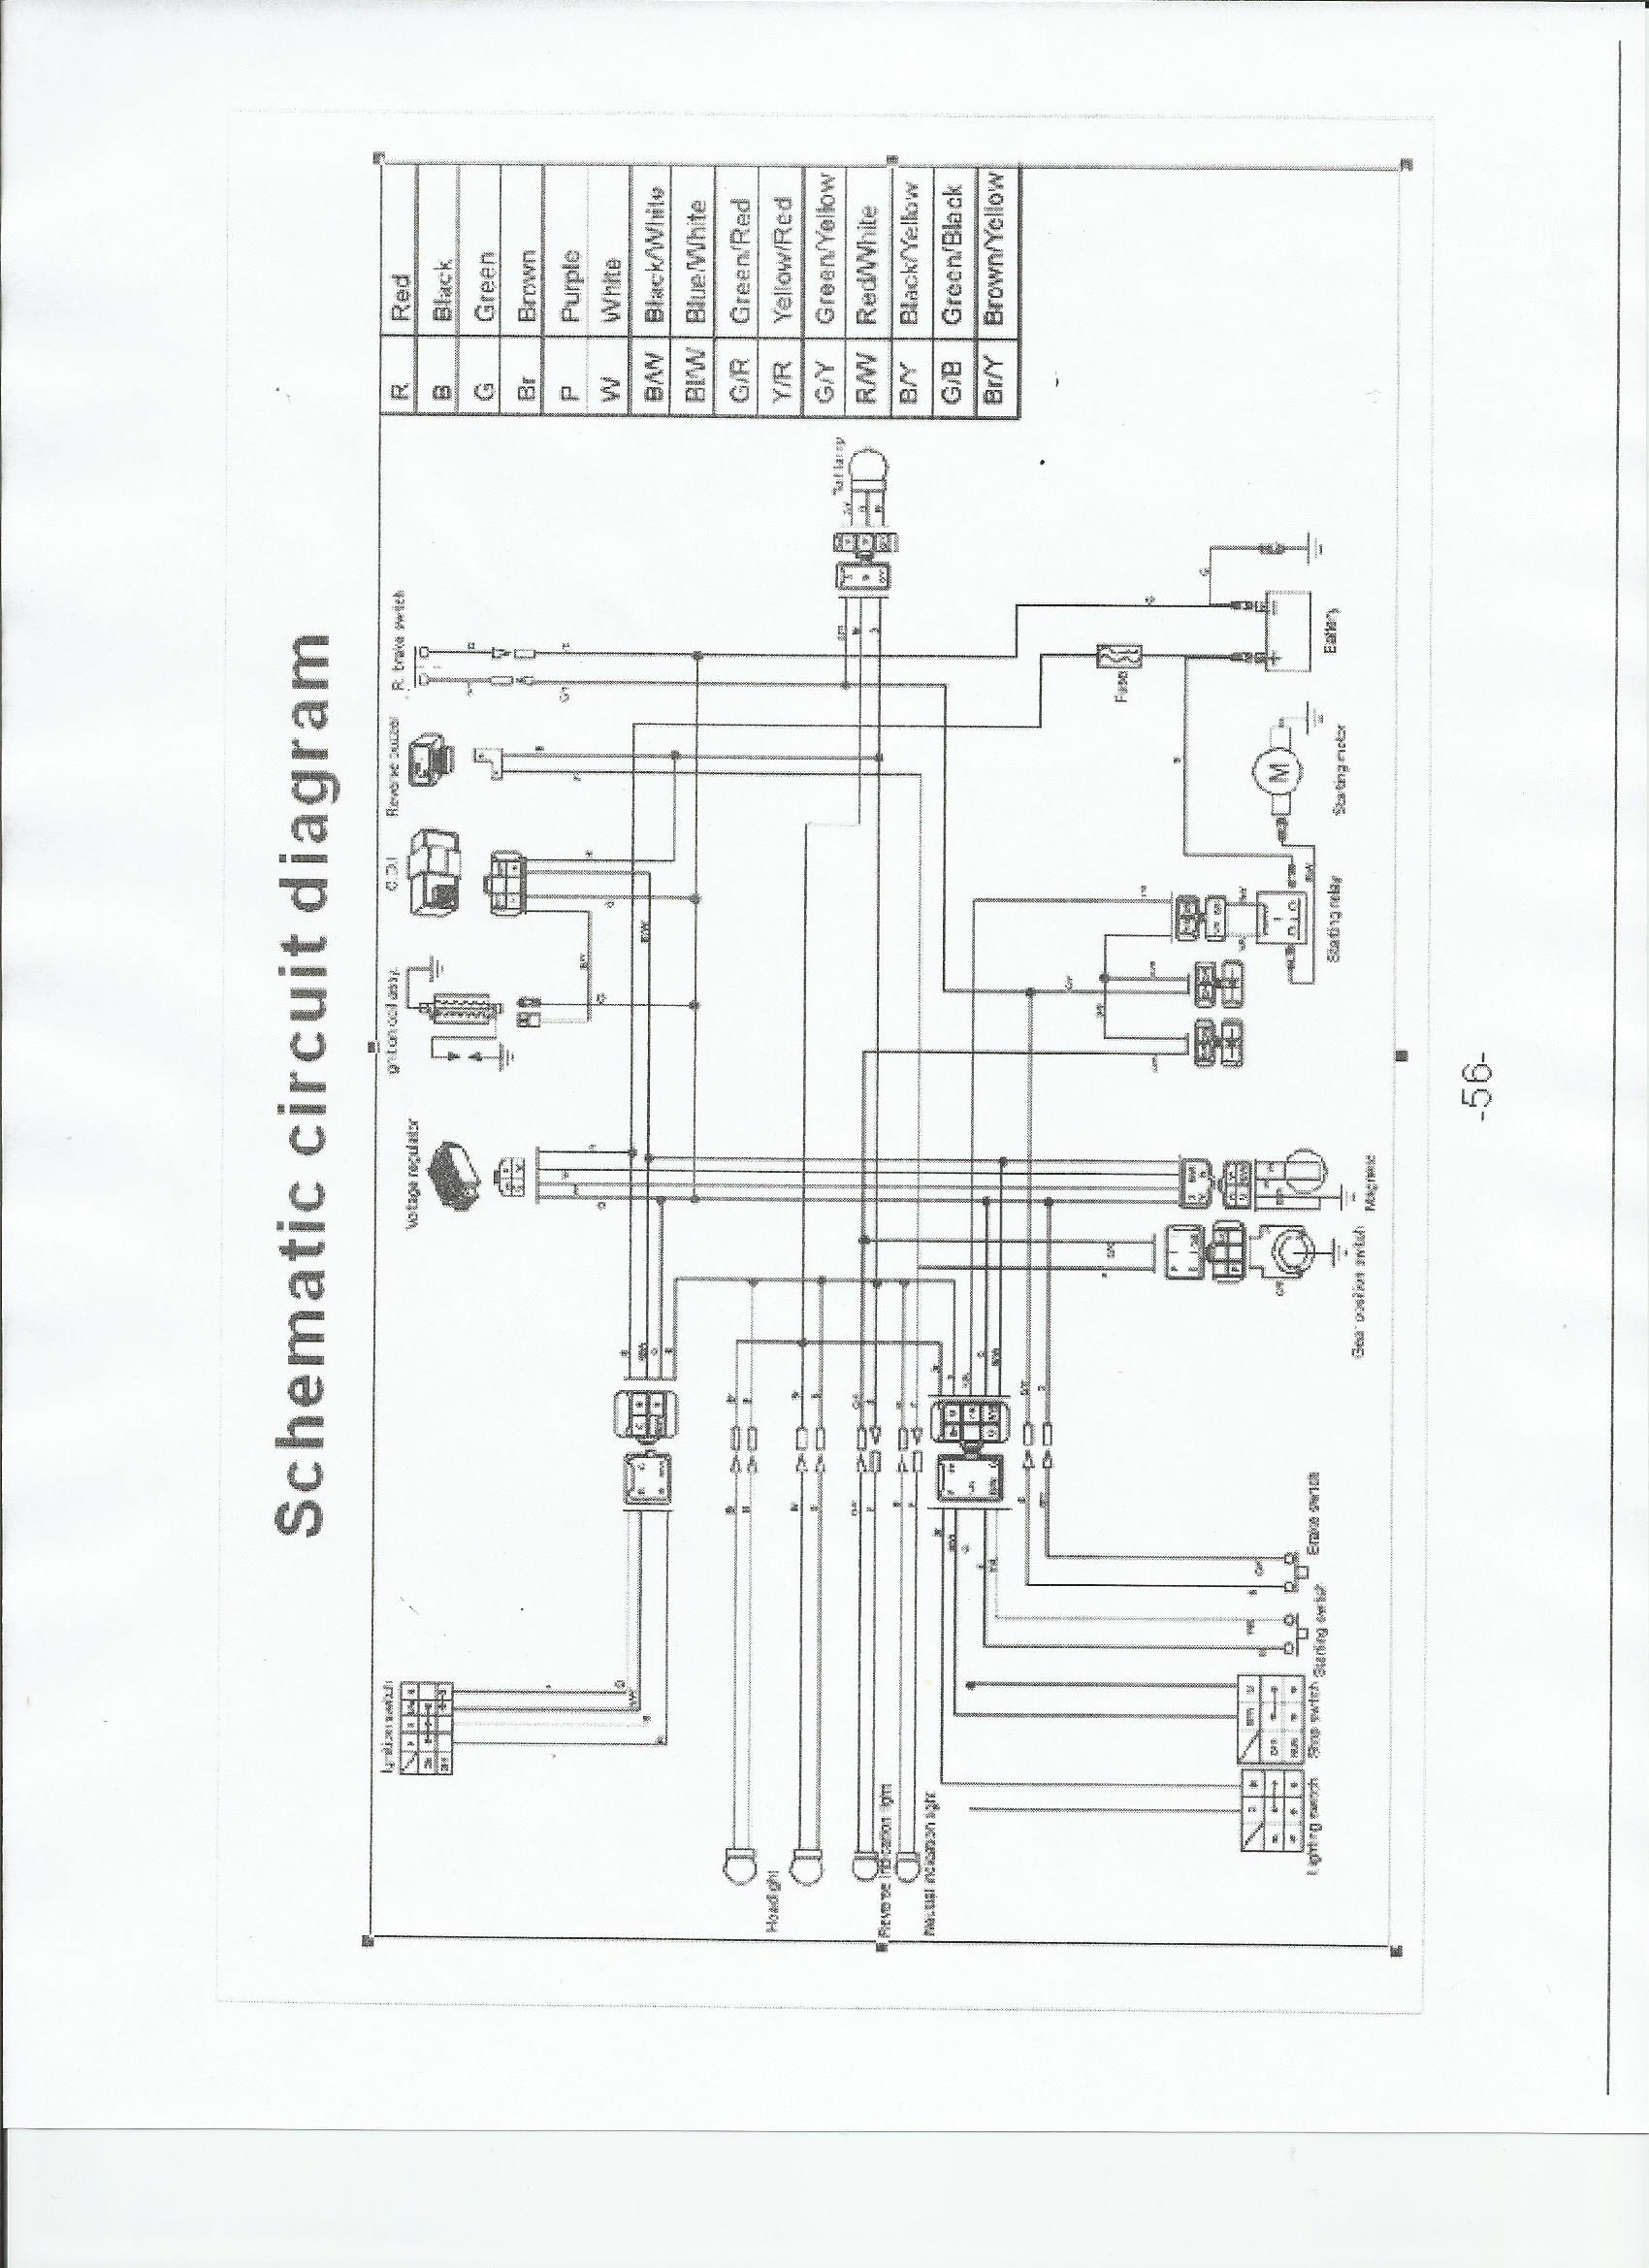 Ar 3793 Chinese 110 Atv Wiring Diagram Get Free Image About Wiring Diagram Schematic Wiring